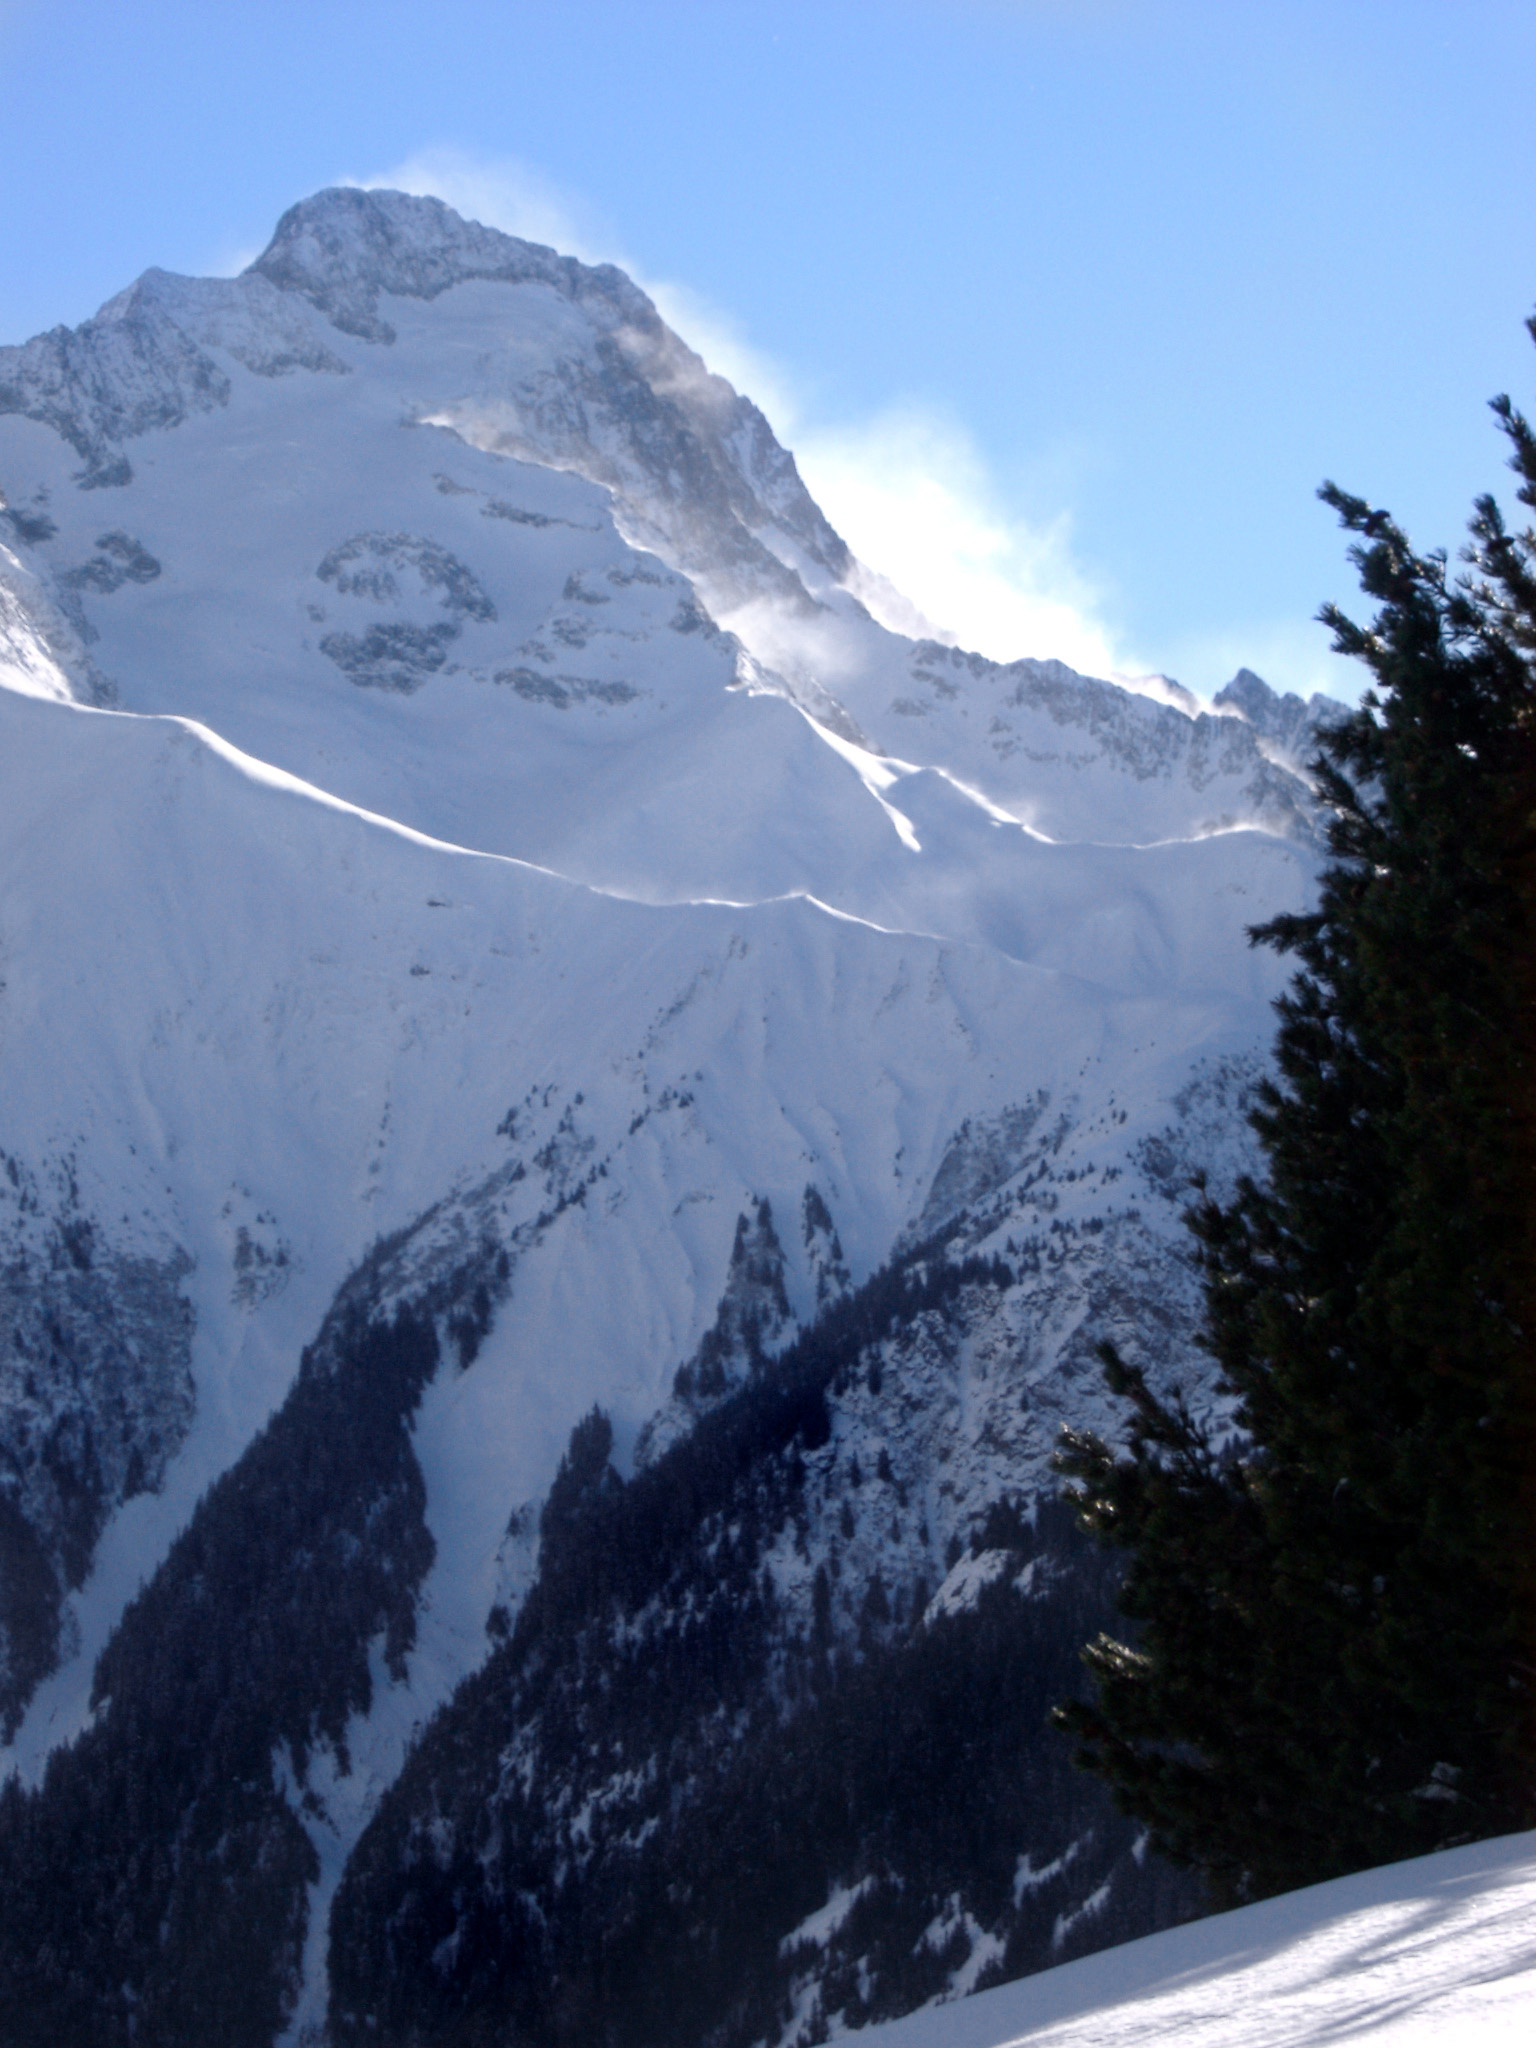 Winter mountains in France with a rugged snow covered peak towering above an evergreen forest of fir trees under a sunny blue sky